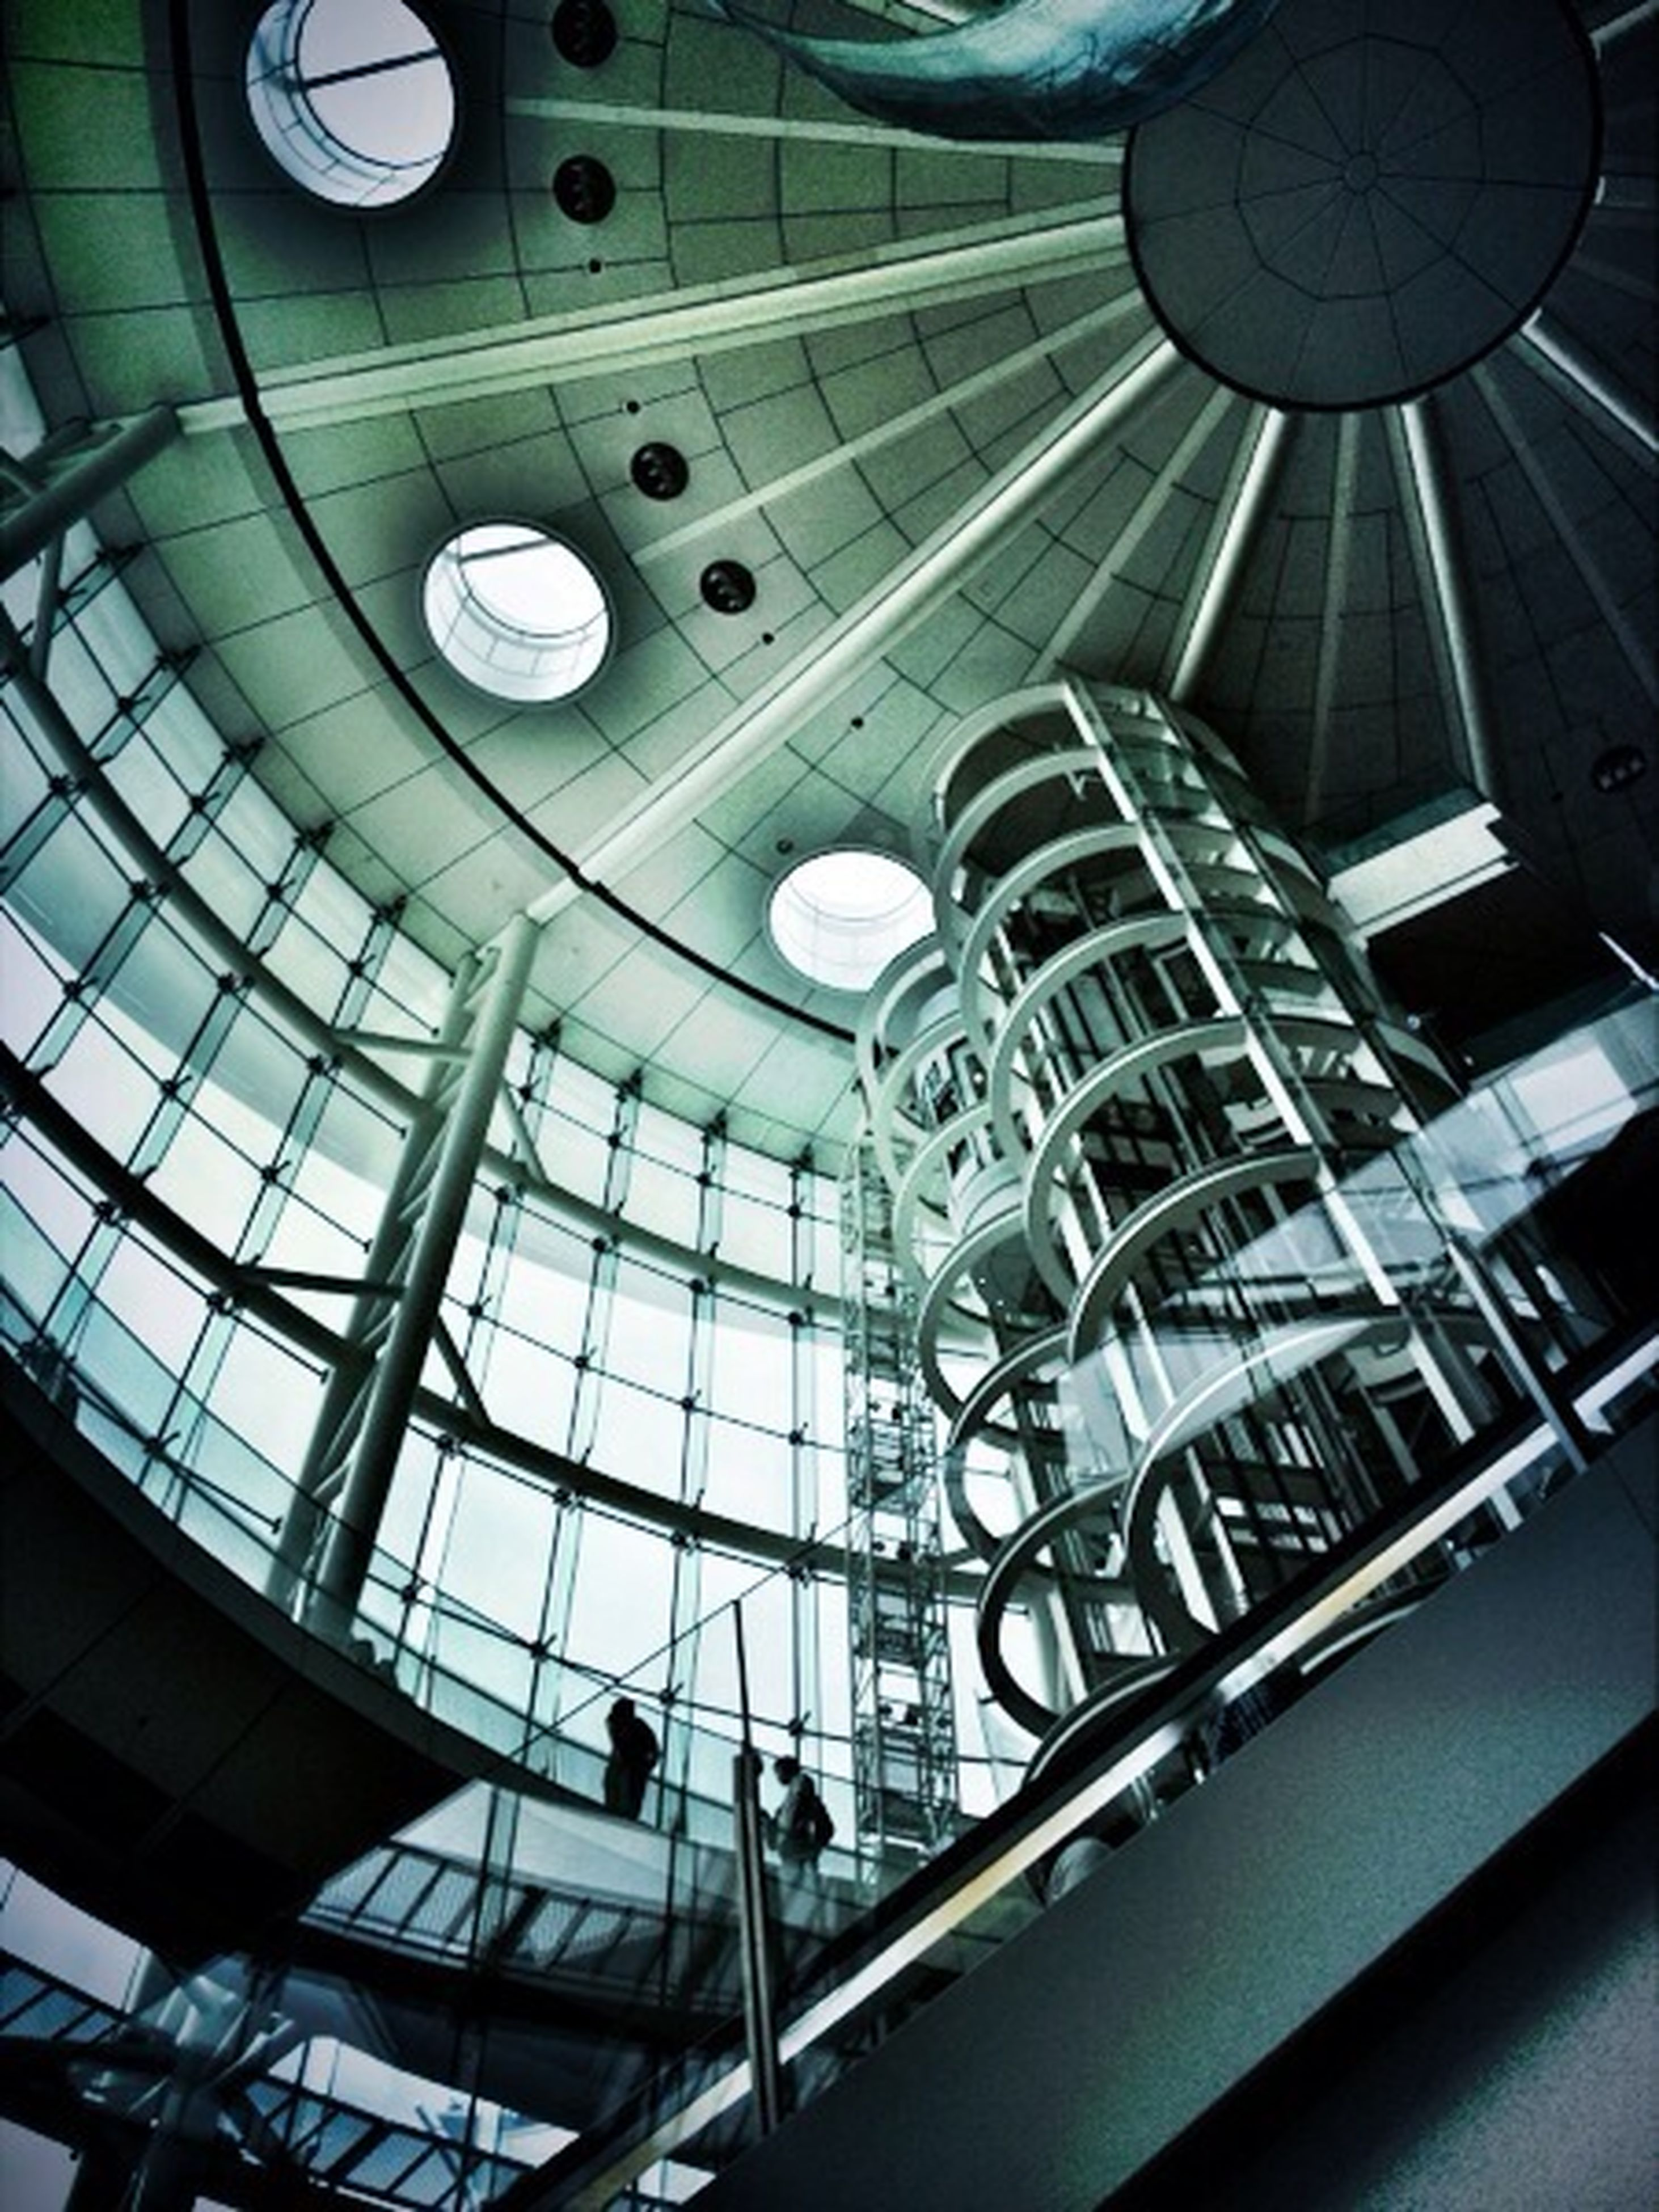 indoors, architecture, low angle view, built structure, ceiling, modern, glass - material, building, skylight, reflection, directly below, window, interior, railing, transparent, architectural feature, no people, day, building exterior, lighting equipment